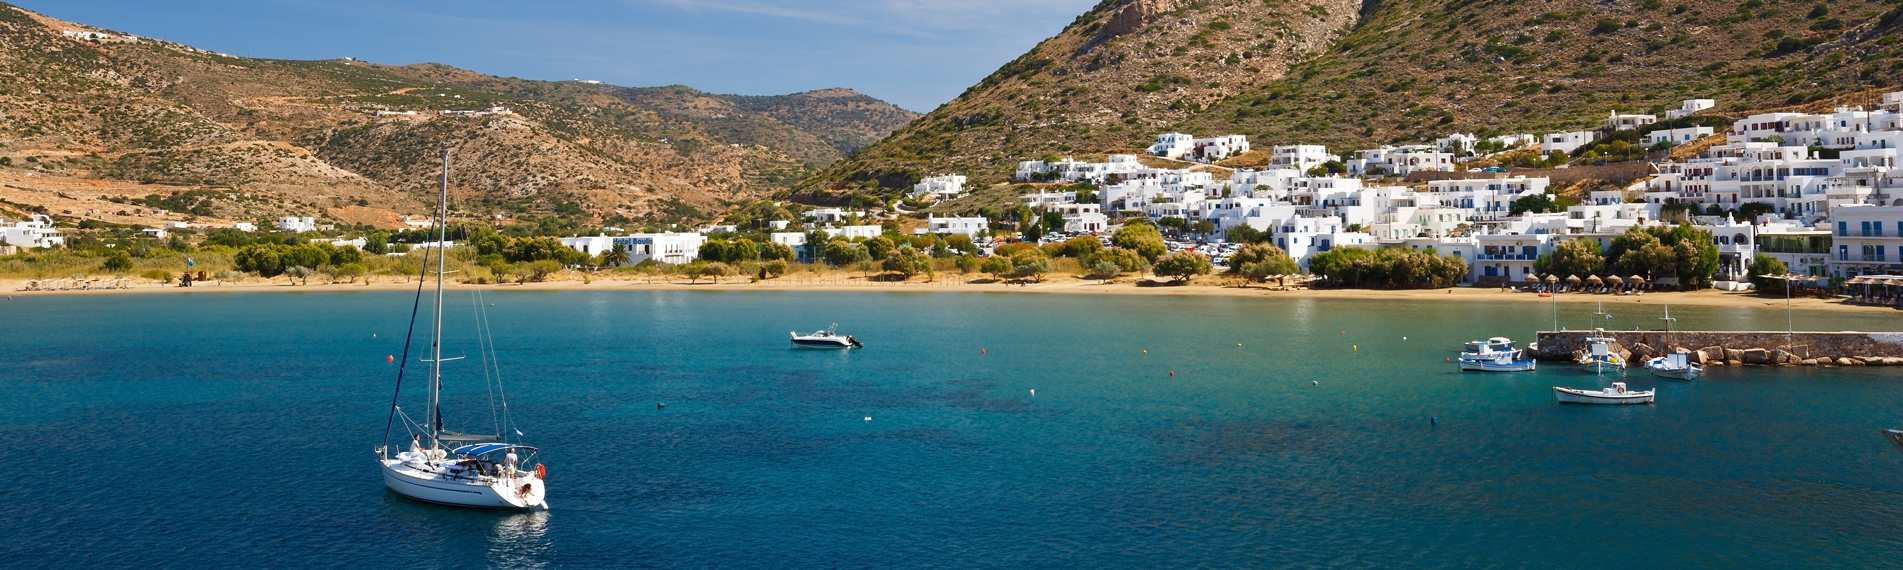 View of the houses by the coast on Sifnos in the Cyclades, Greece